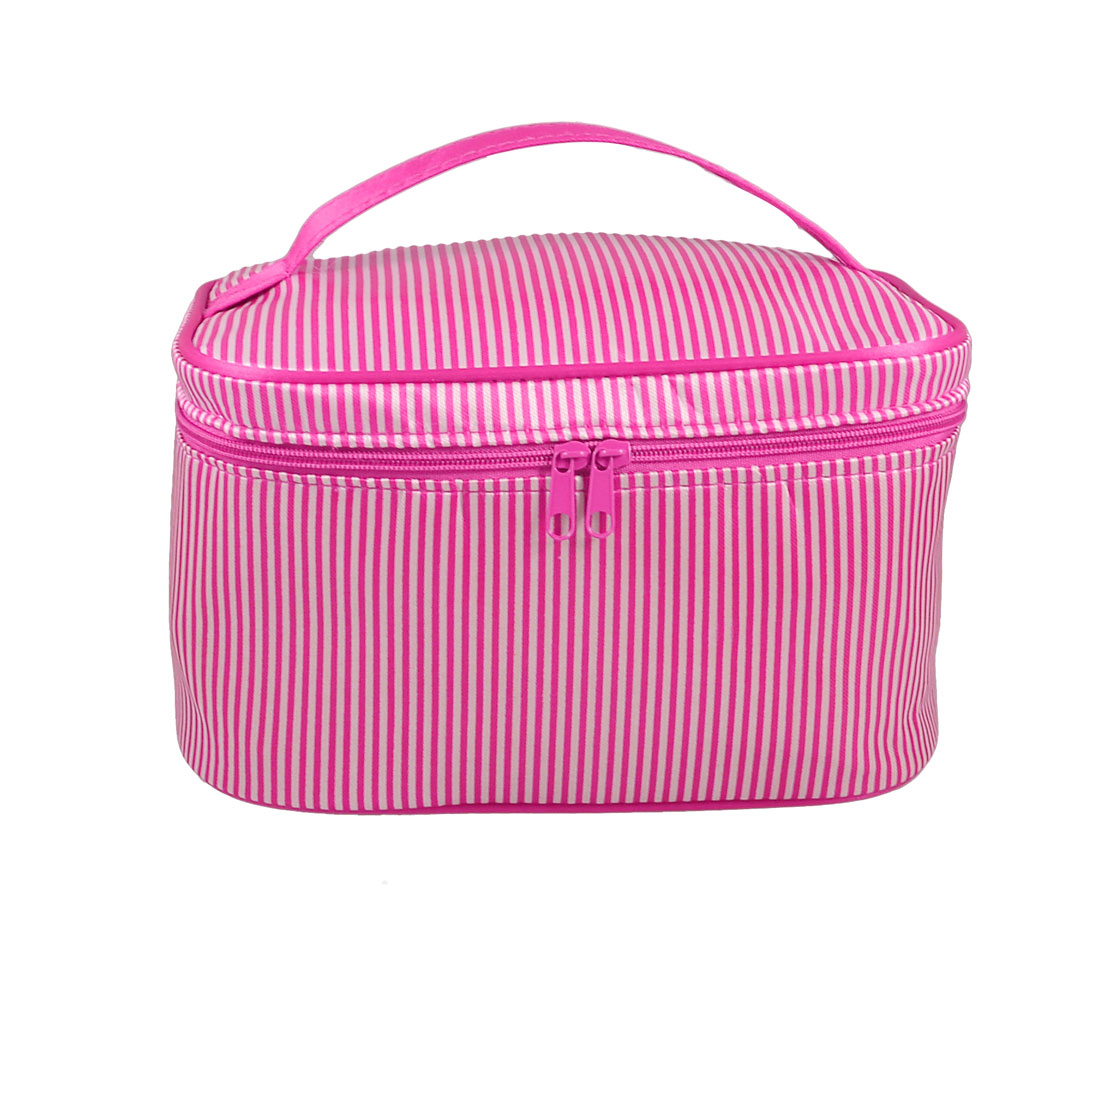 Fuchsia White Pinstripe Inner Mirror Cosmetic Handbag for Lady